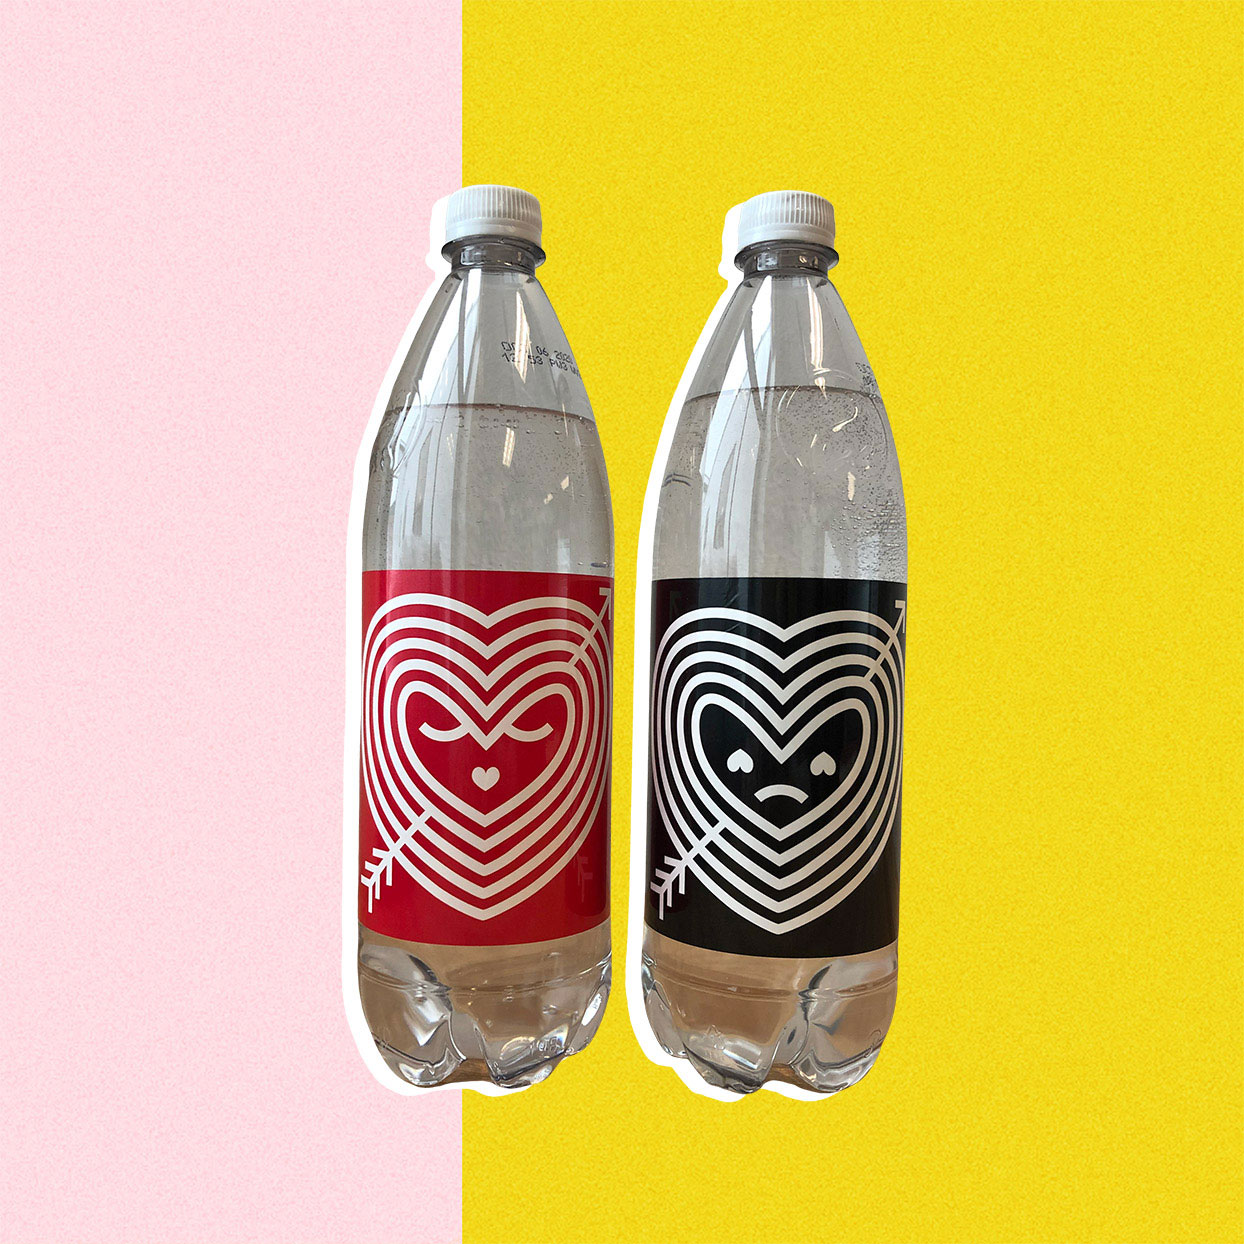 polar seltzer bottles for valentines day